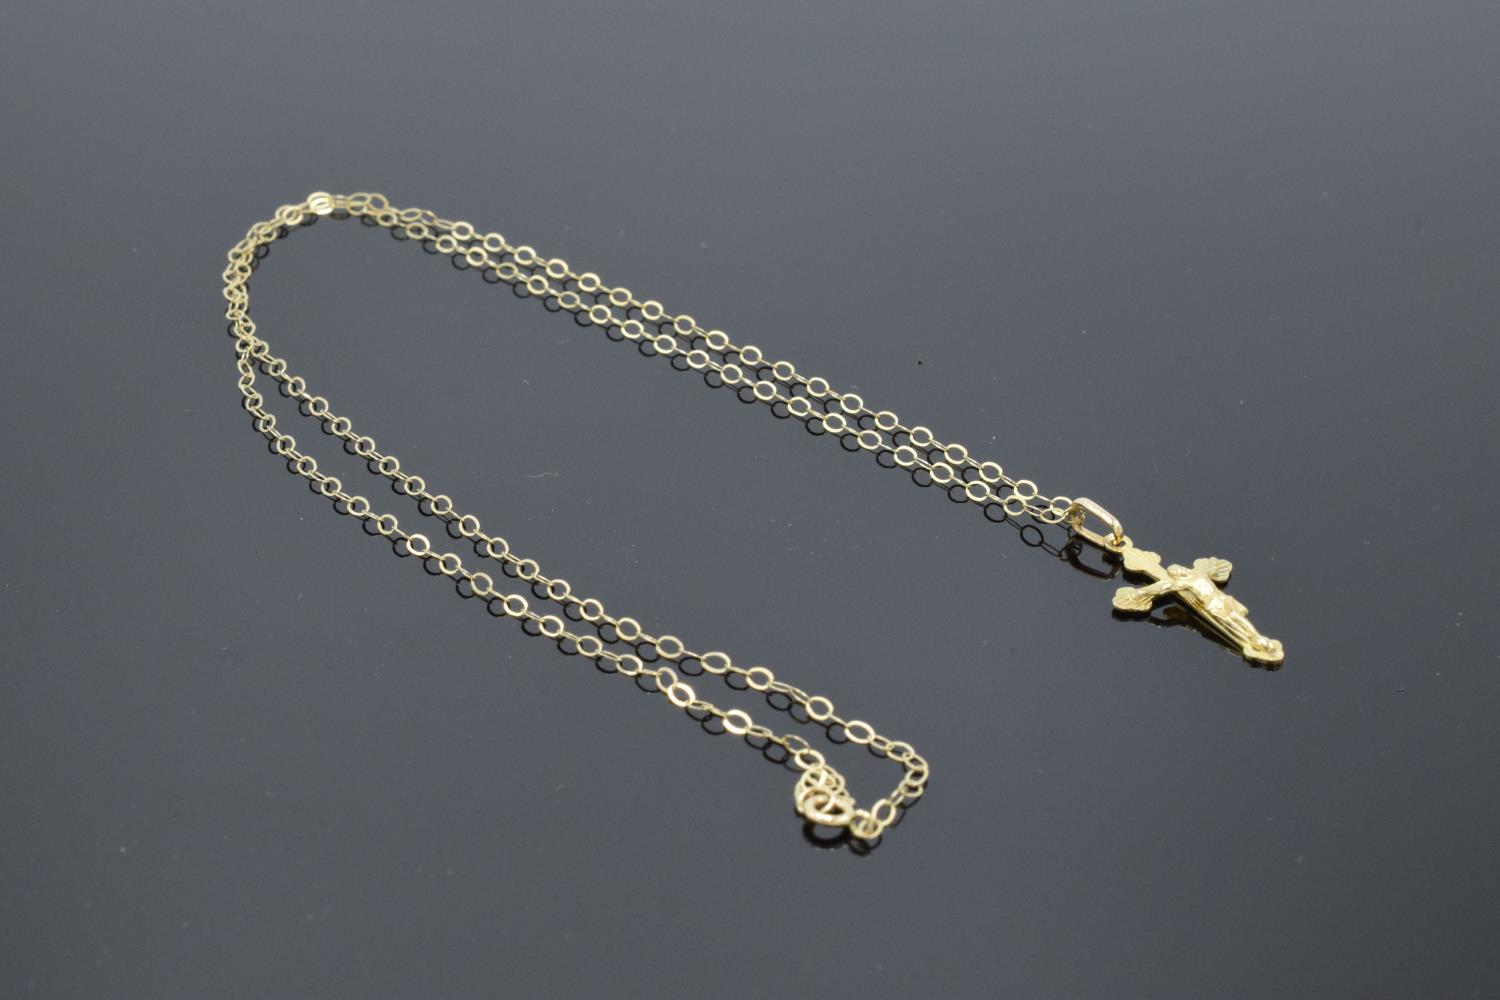 A 9ct gold (stamped 375 Italy) crucifix pendant on a gold chain. 0.8 grams. 46cm in length with - Image 3 of 3